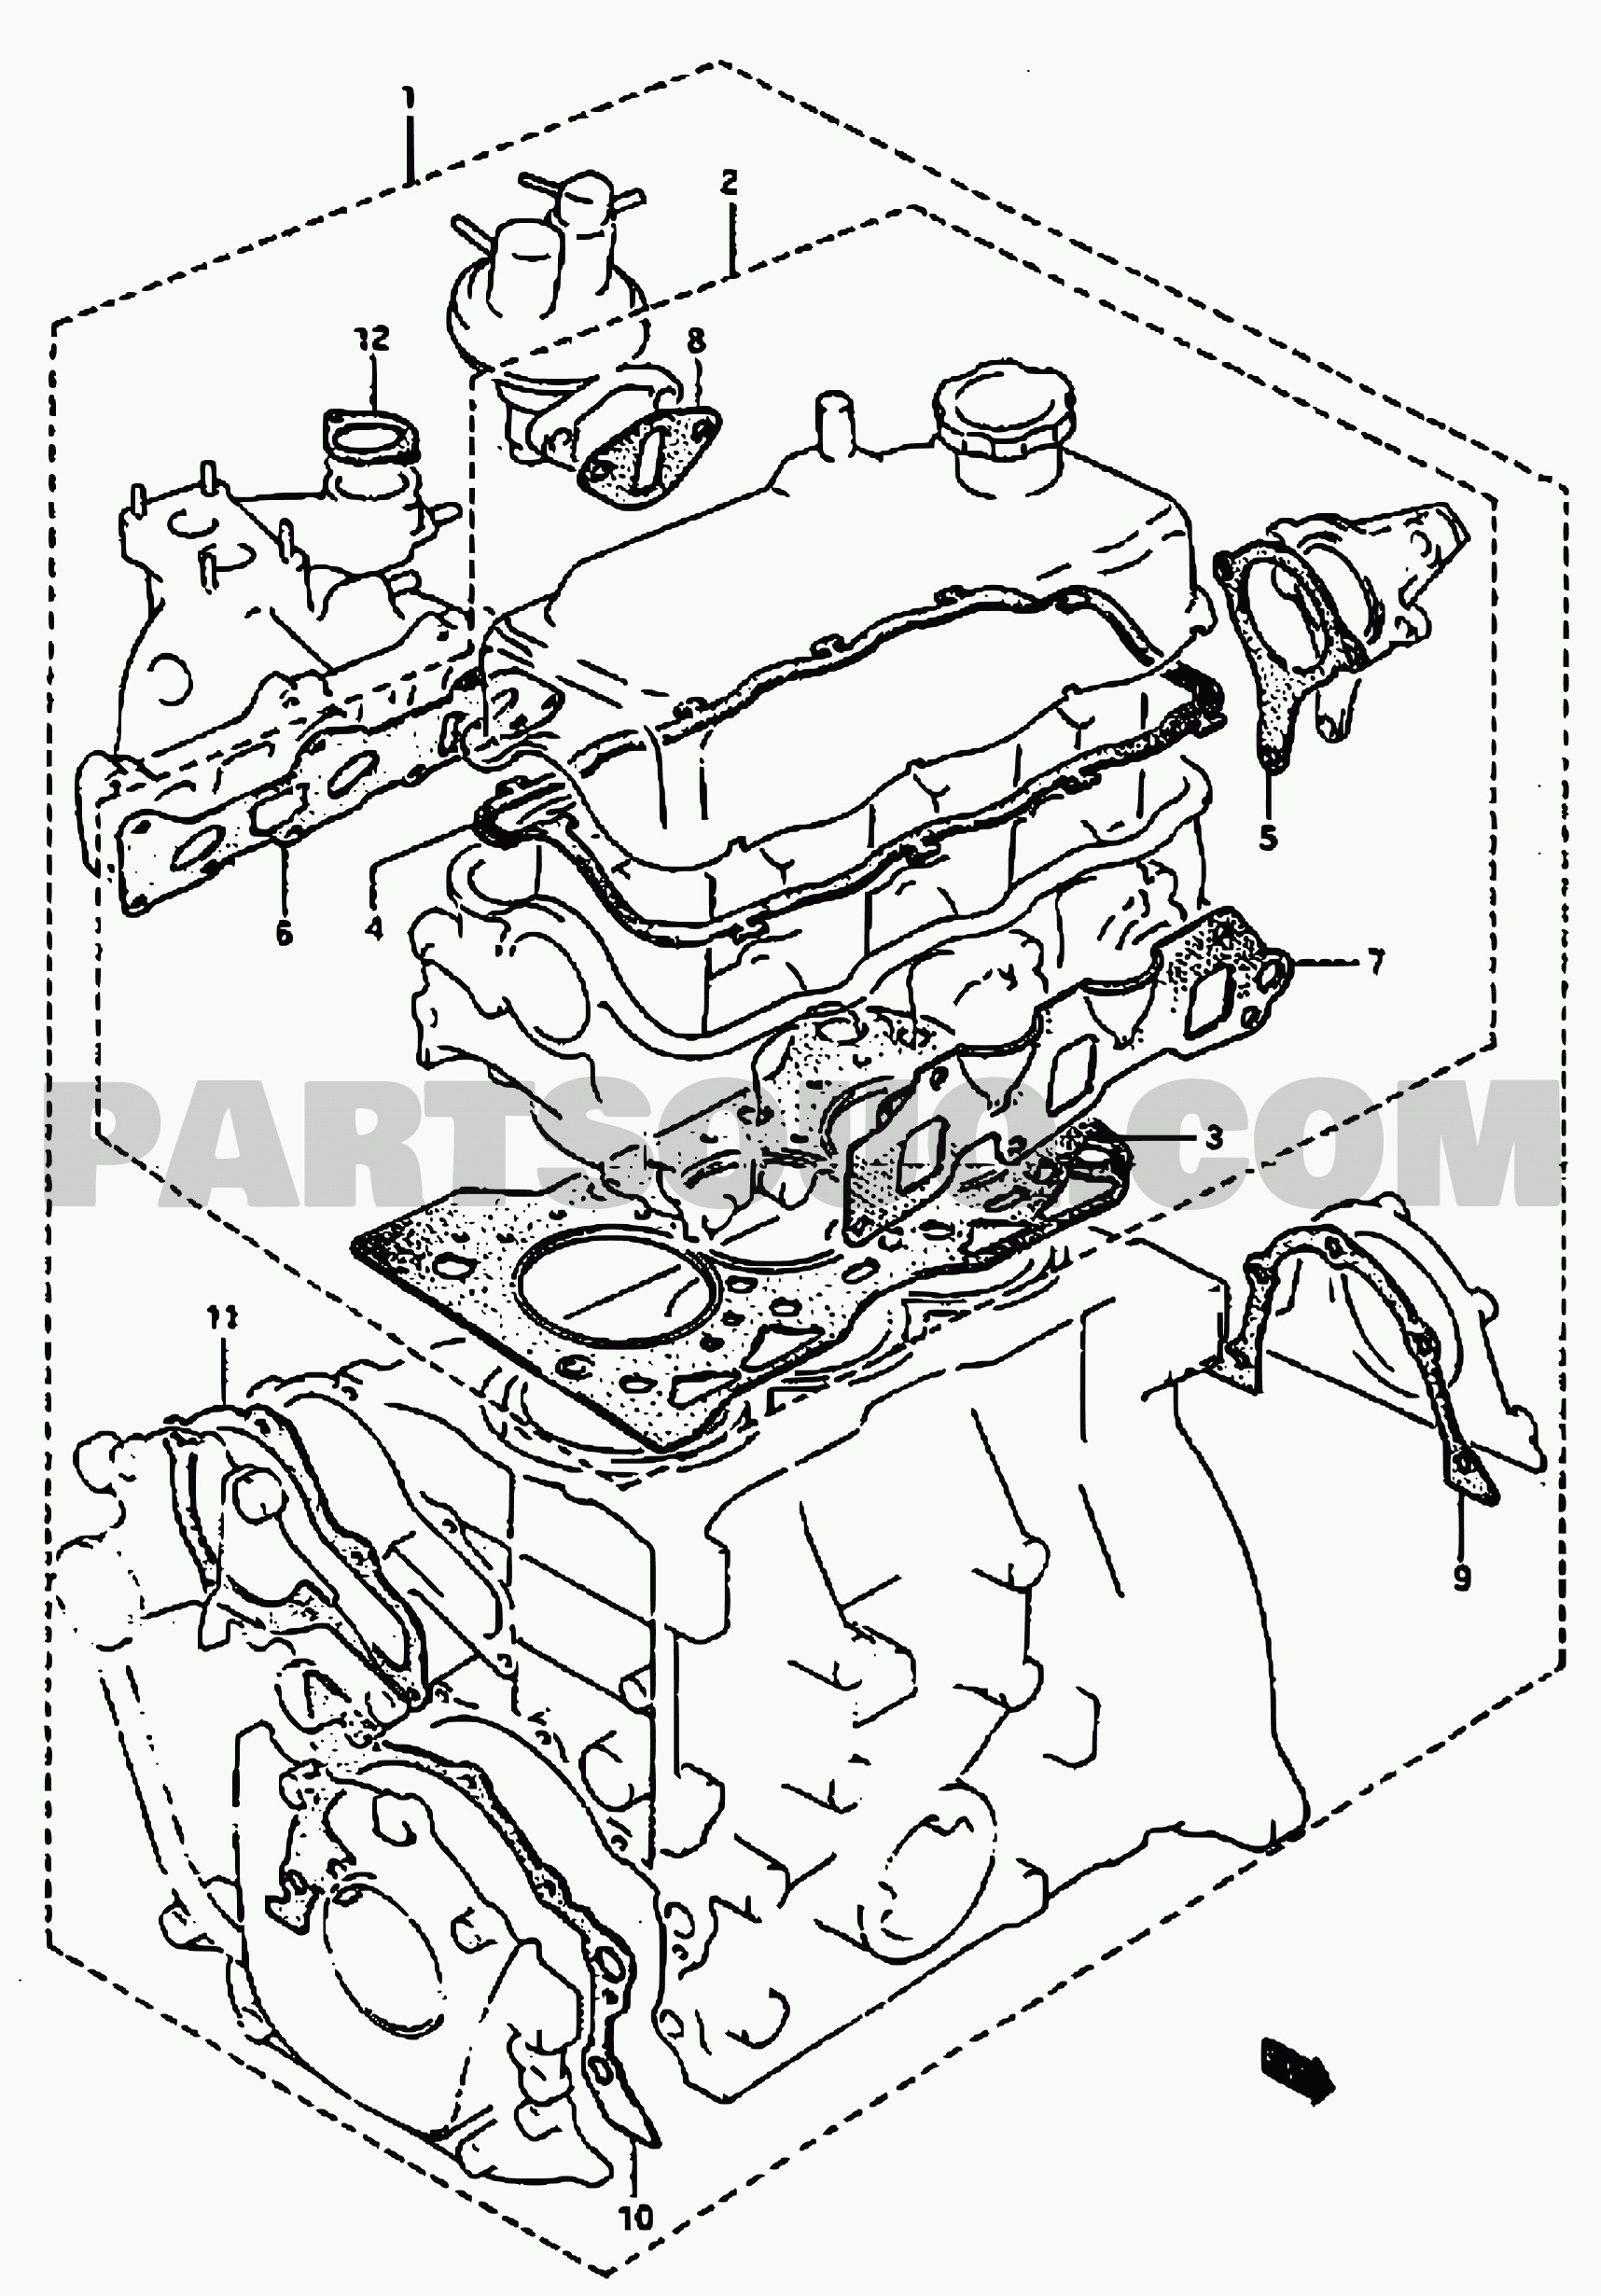 Suzuki Swift Engine Diagram Suzuki Door Schematic Wiring